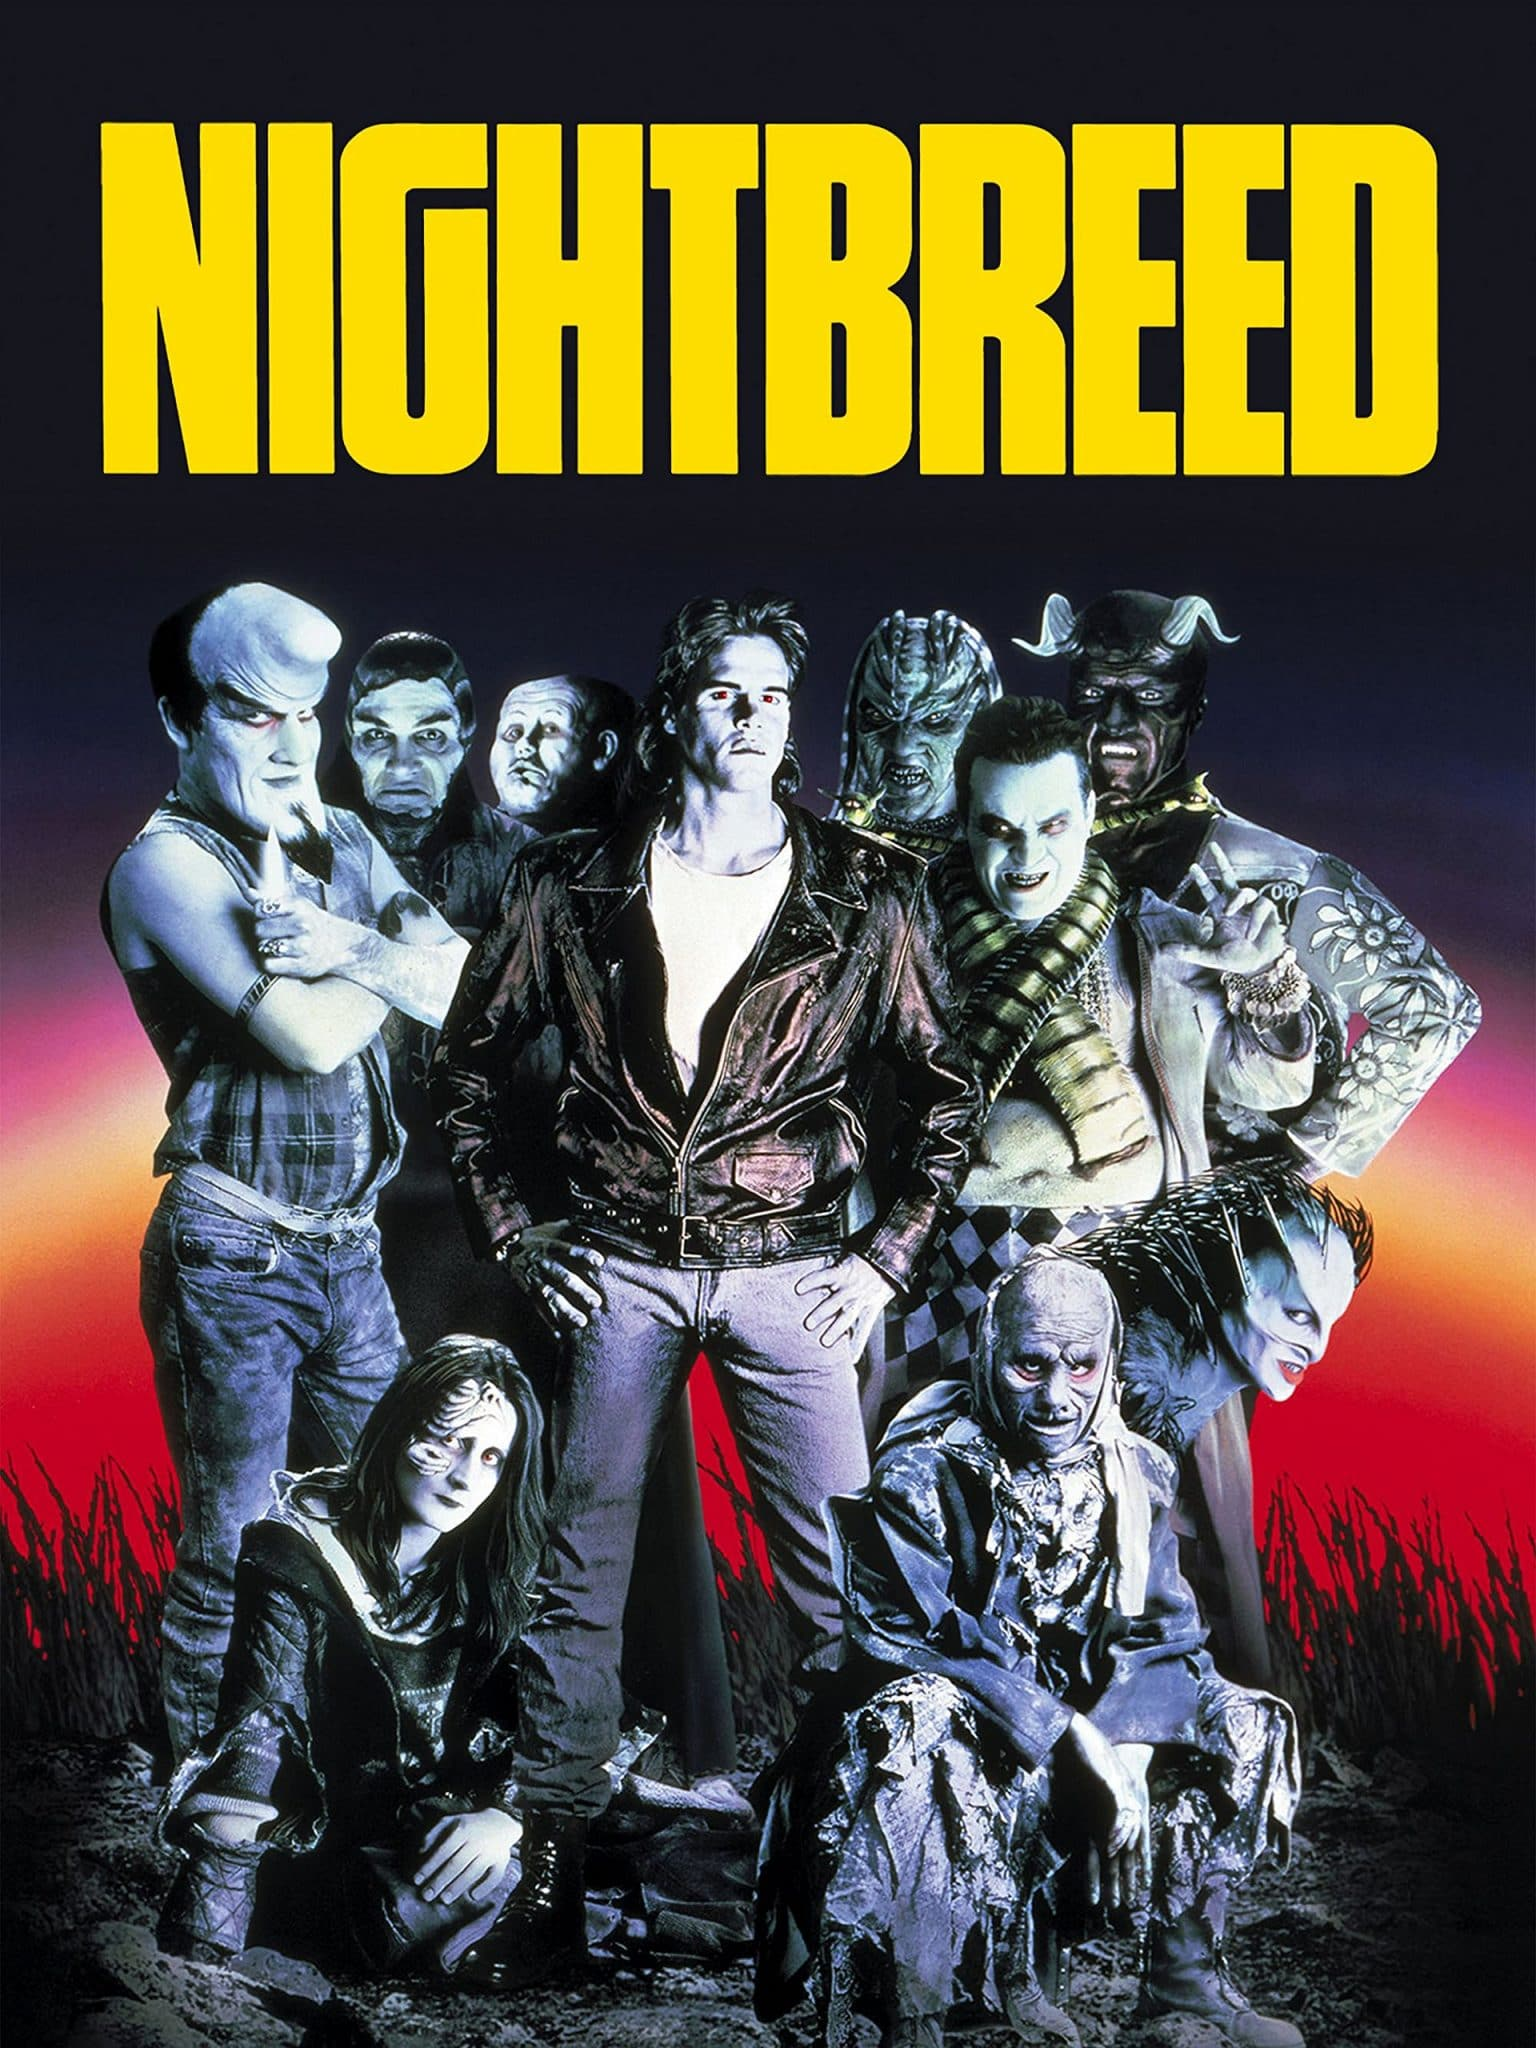 poster for the film 'Nightbreed'